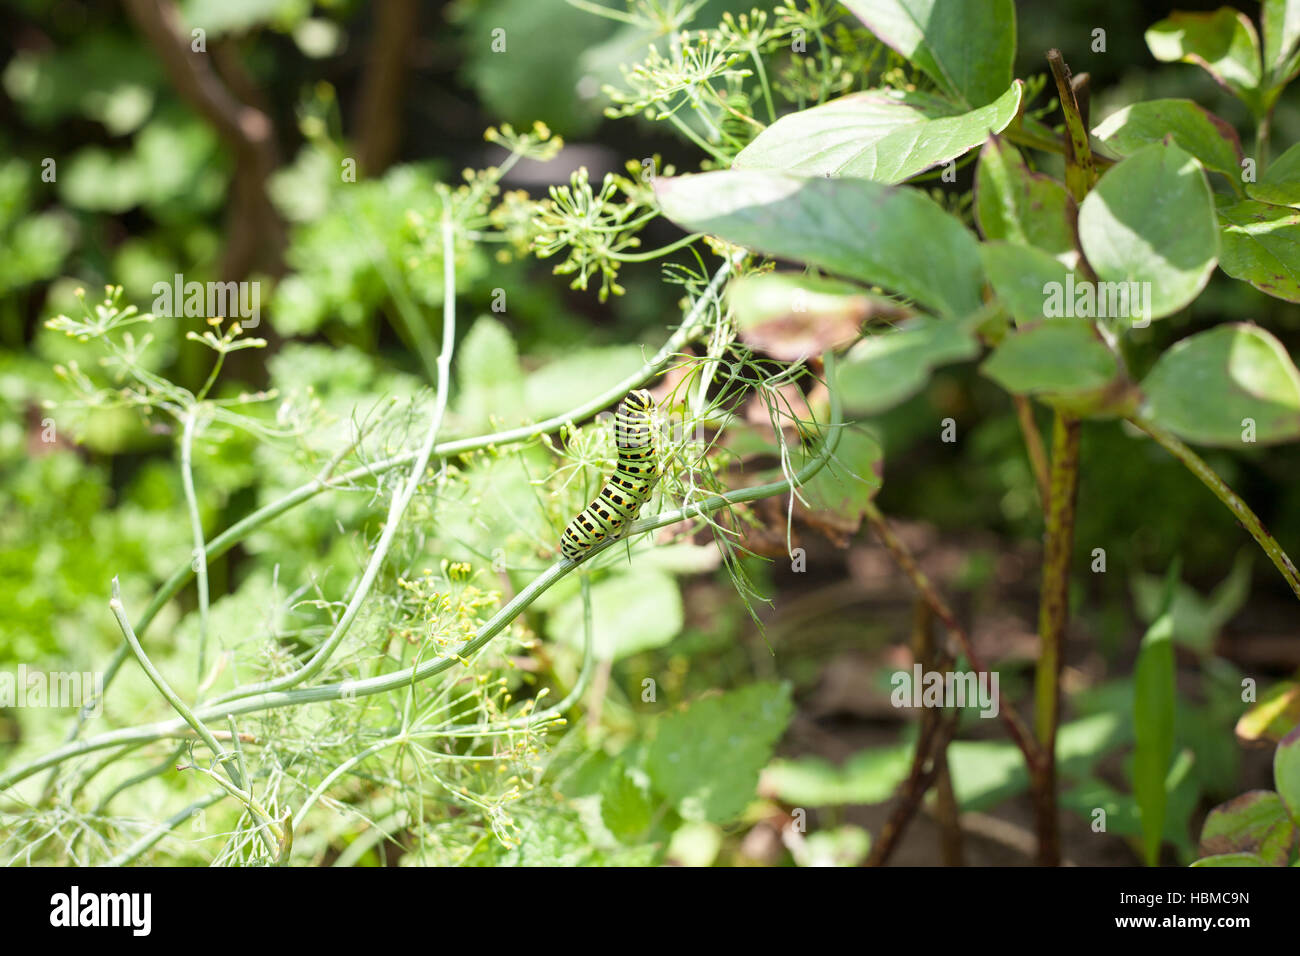 Larva of Papilionoidea eating a leaf of dill - Stock Image